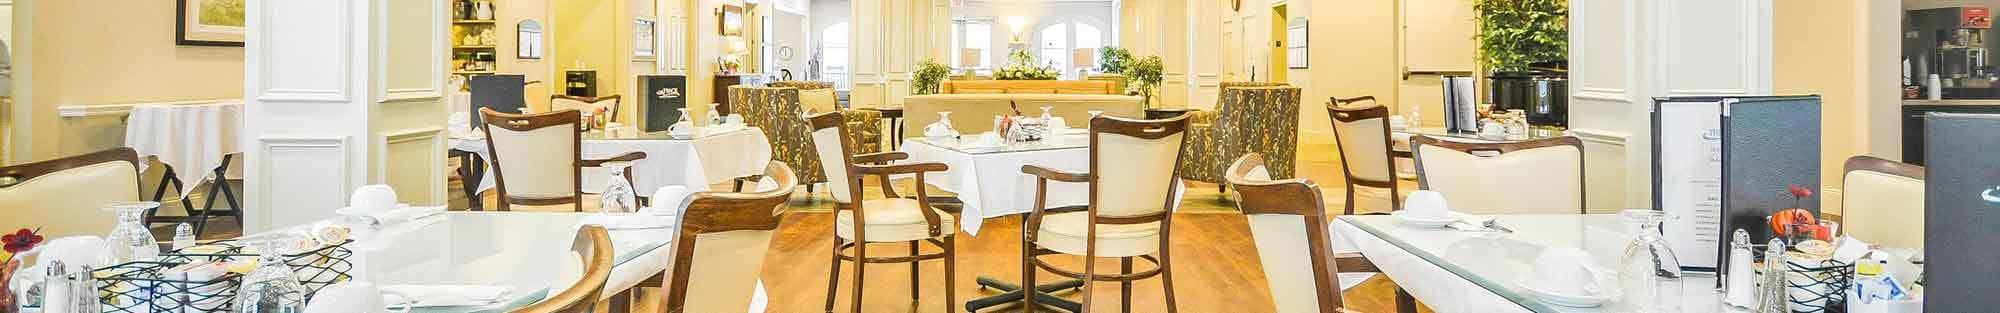 Senior living in Covington, LA